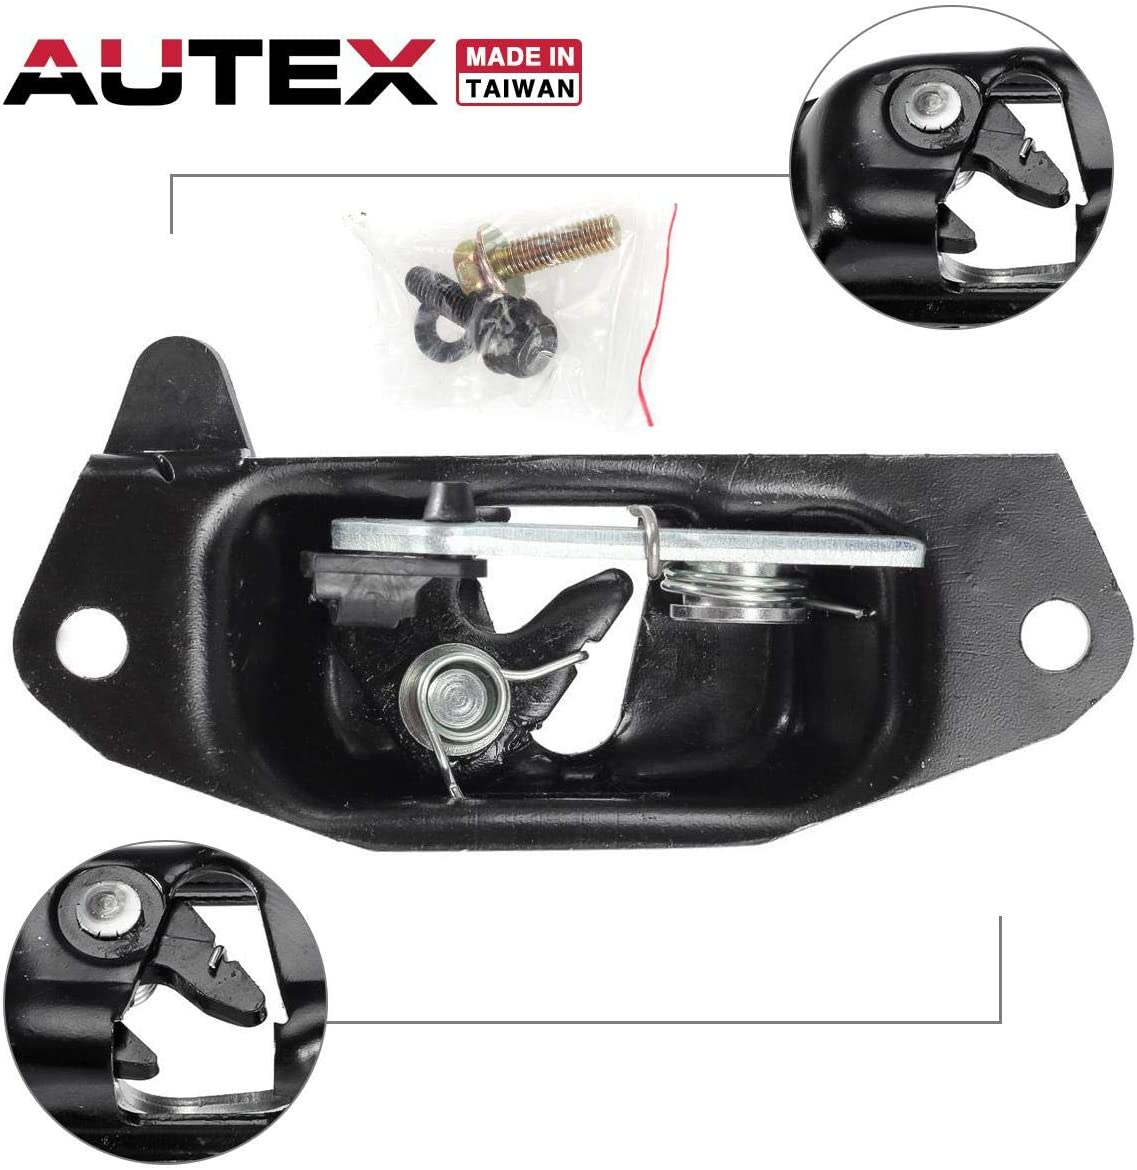 SET OF 20 FOR GM AVALANCHE YUKON ESCALADE TAILGATE HANDLE LOCK ROD RETAINER CLIP